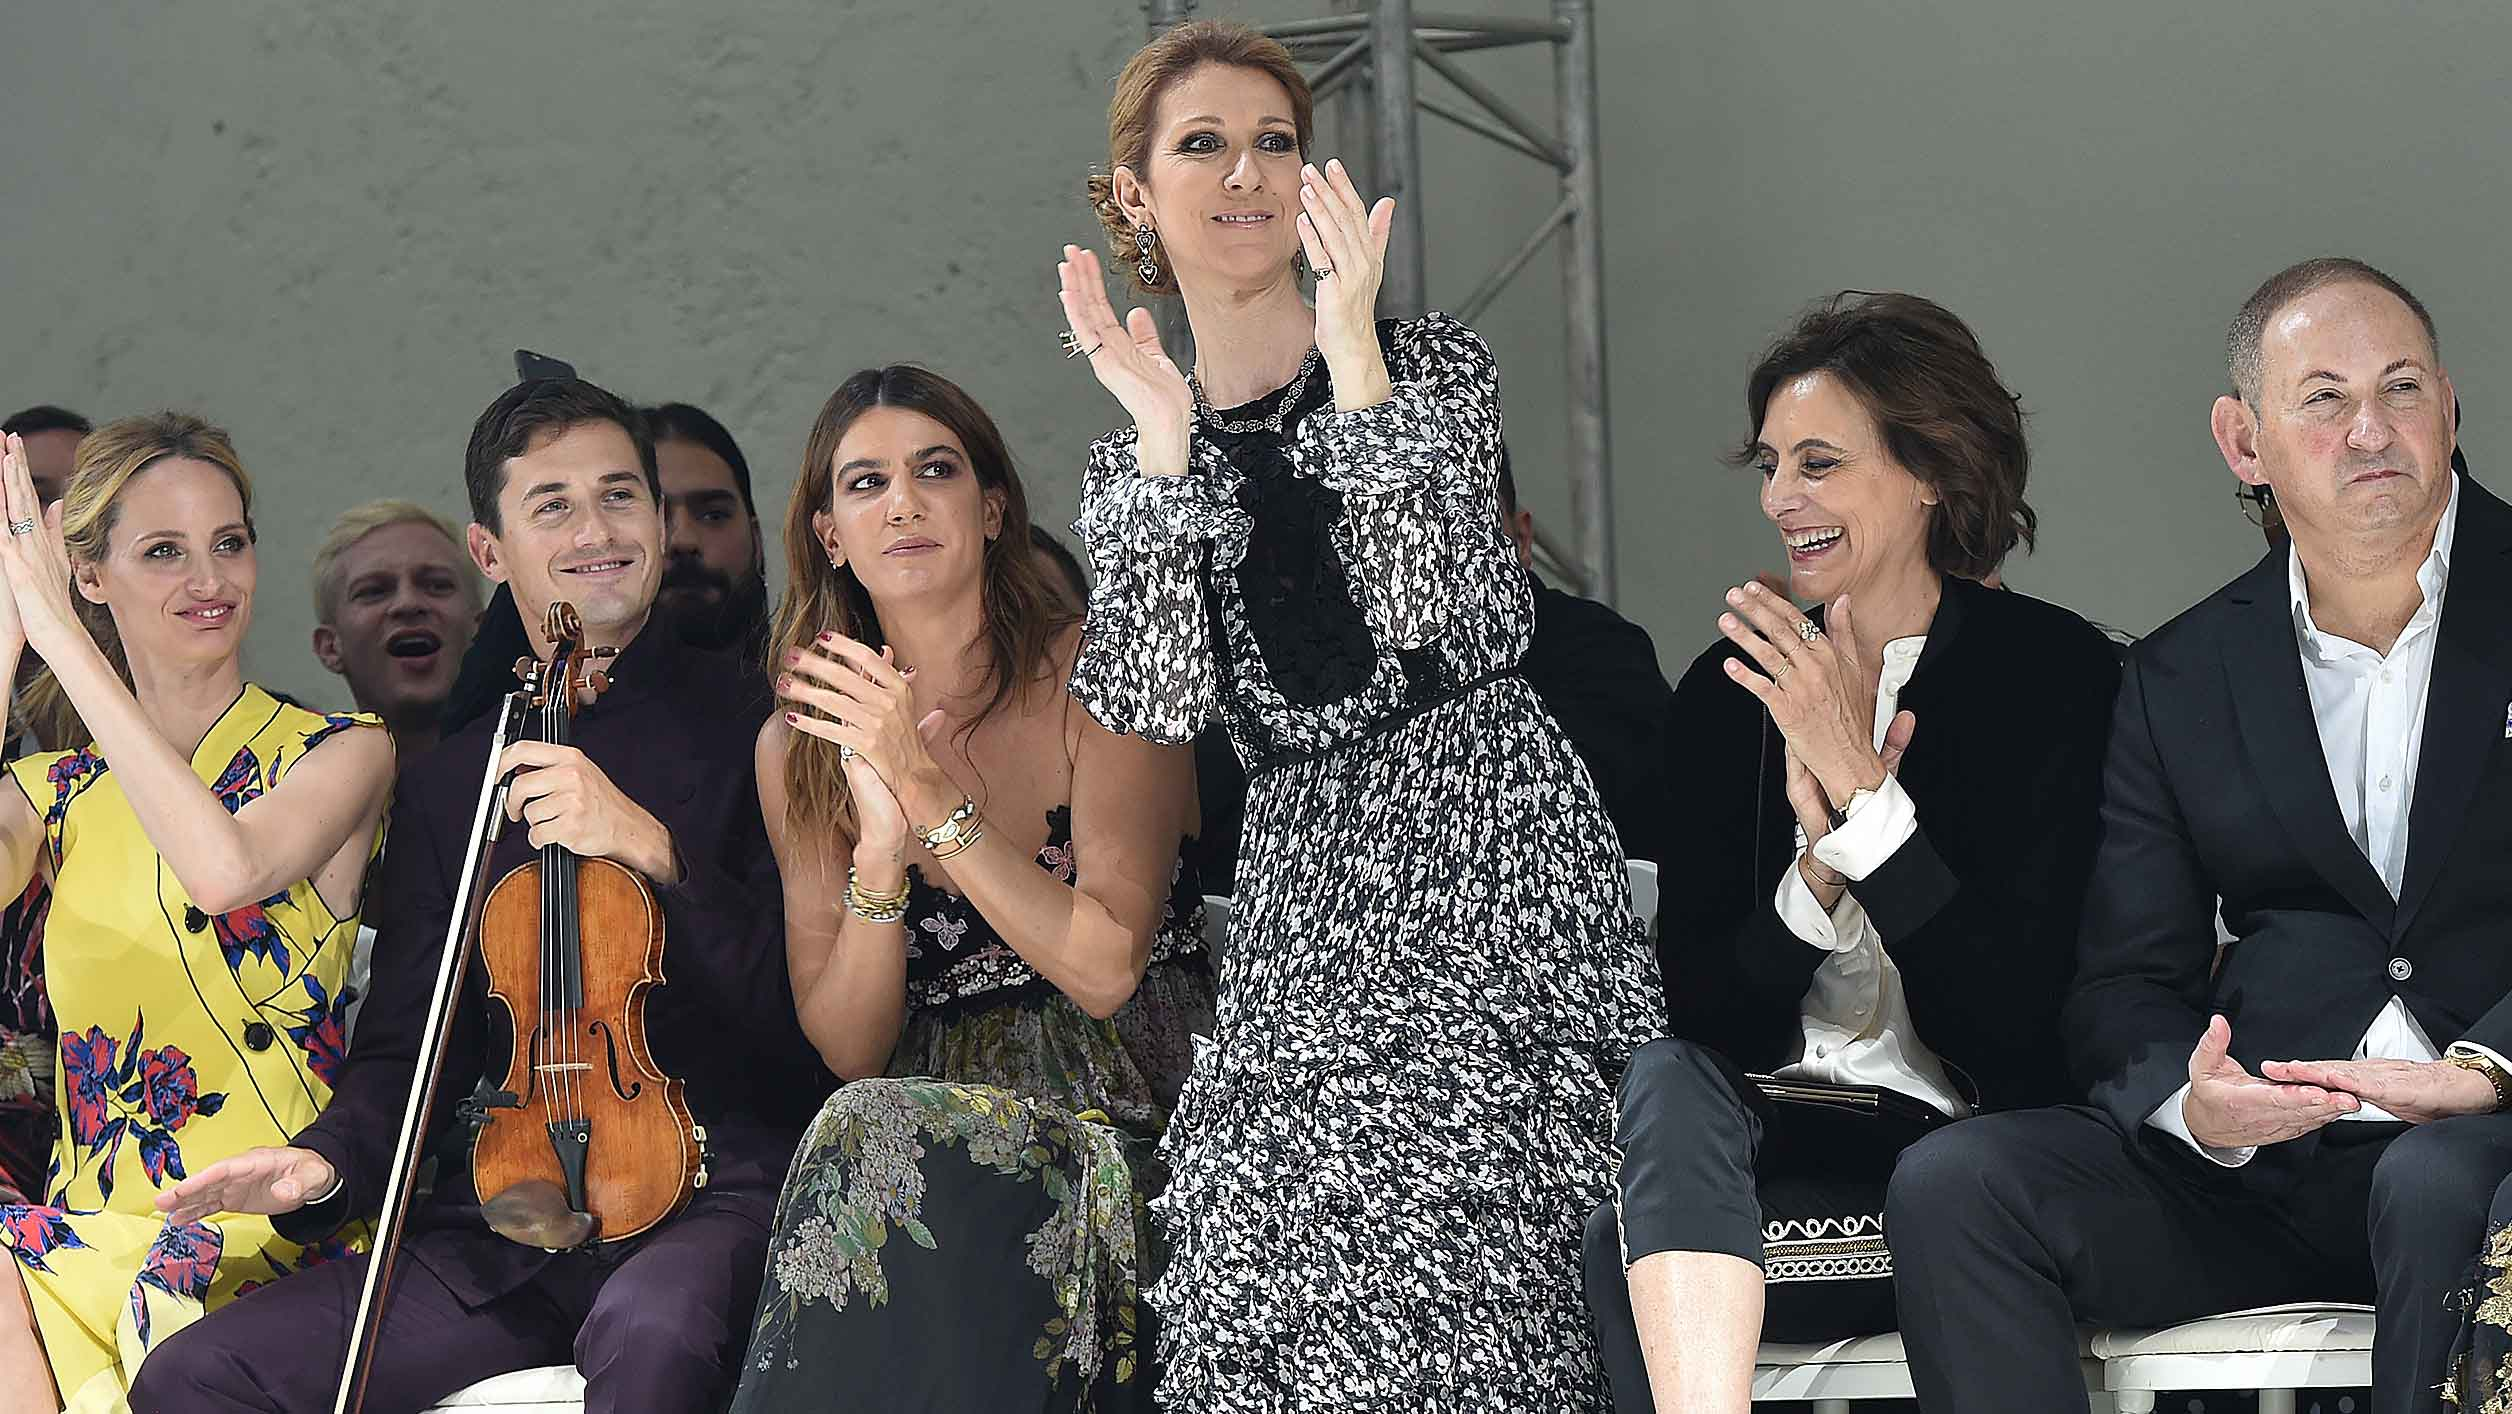 Celine Dion is queen of the world in Titanic-themed jumper